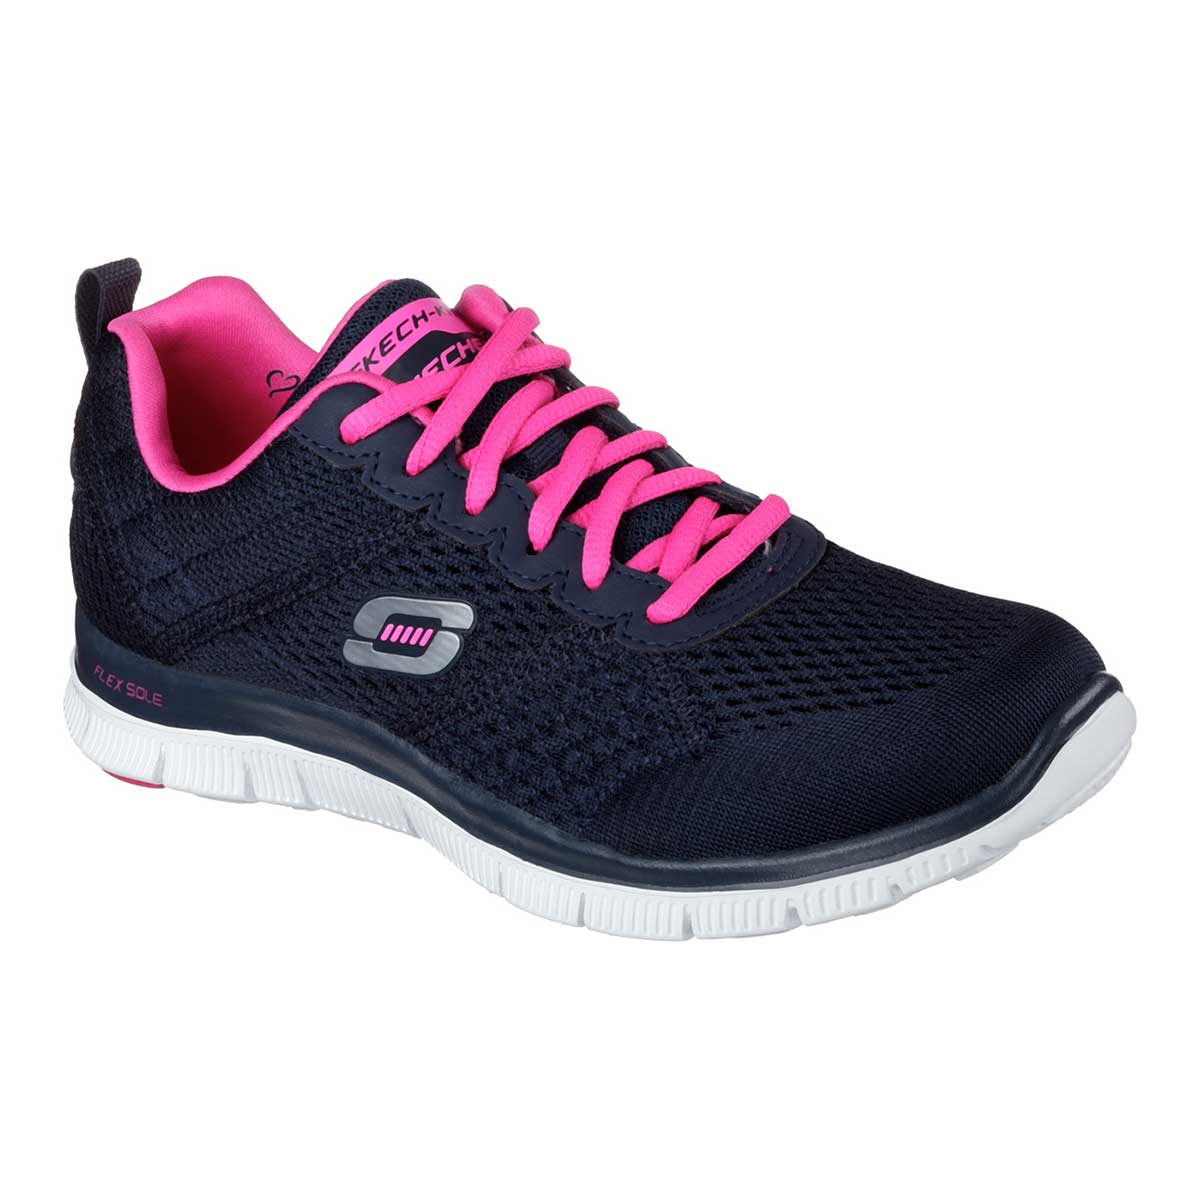 skechers flex sole running